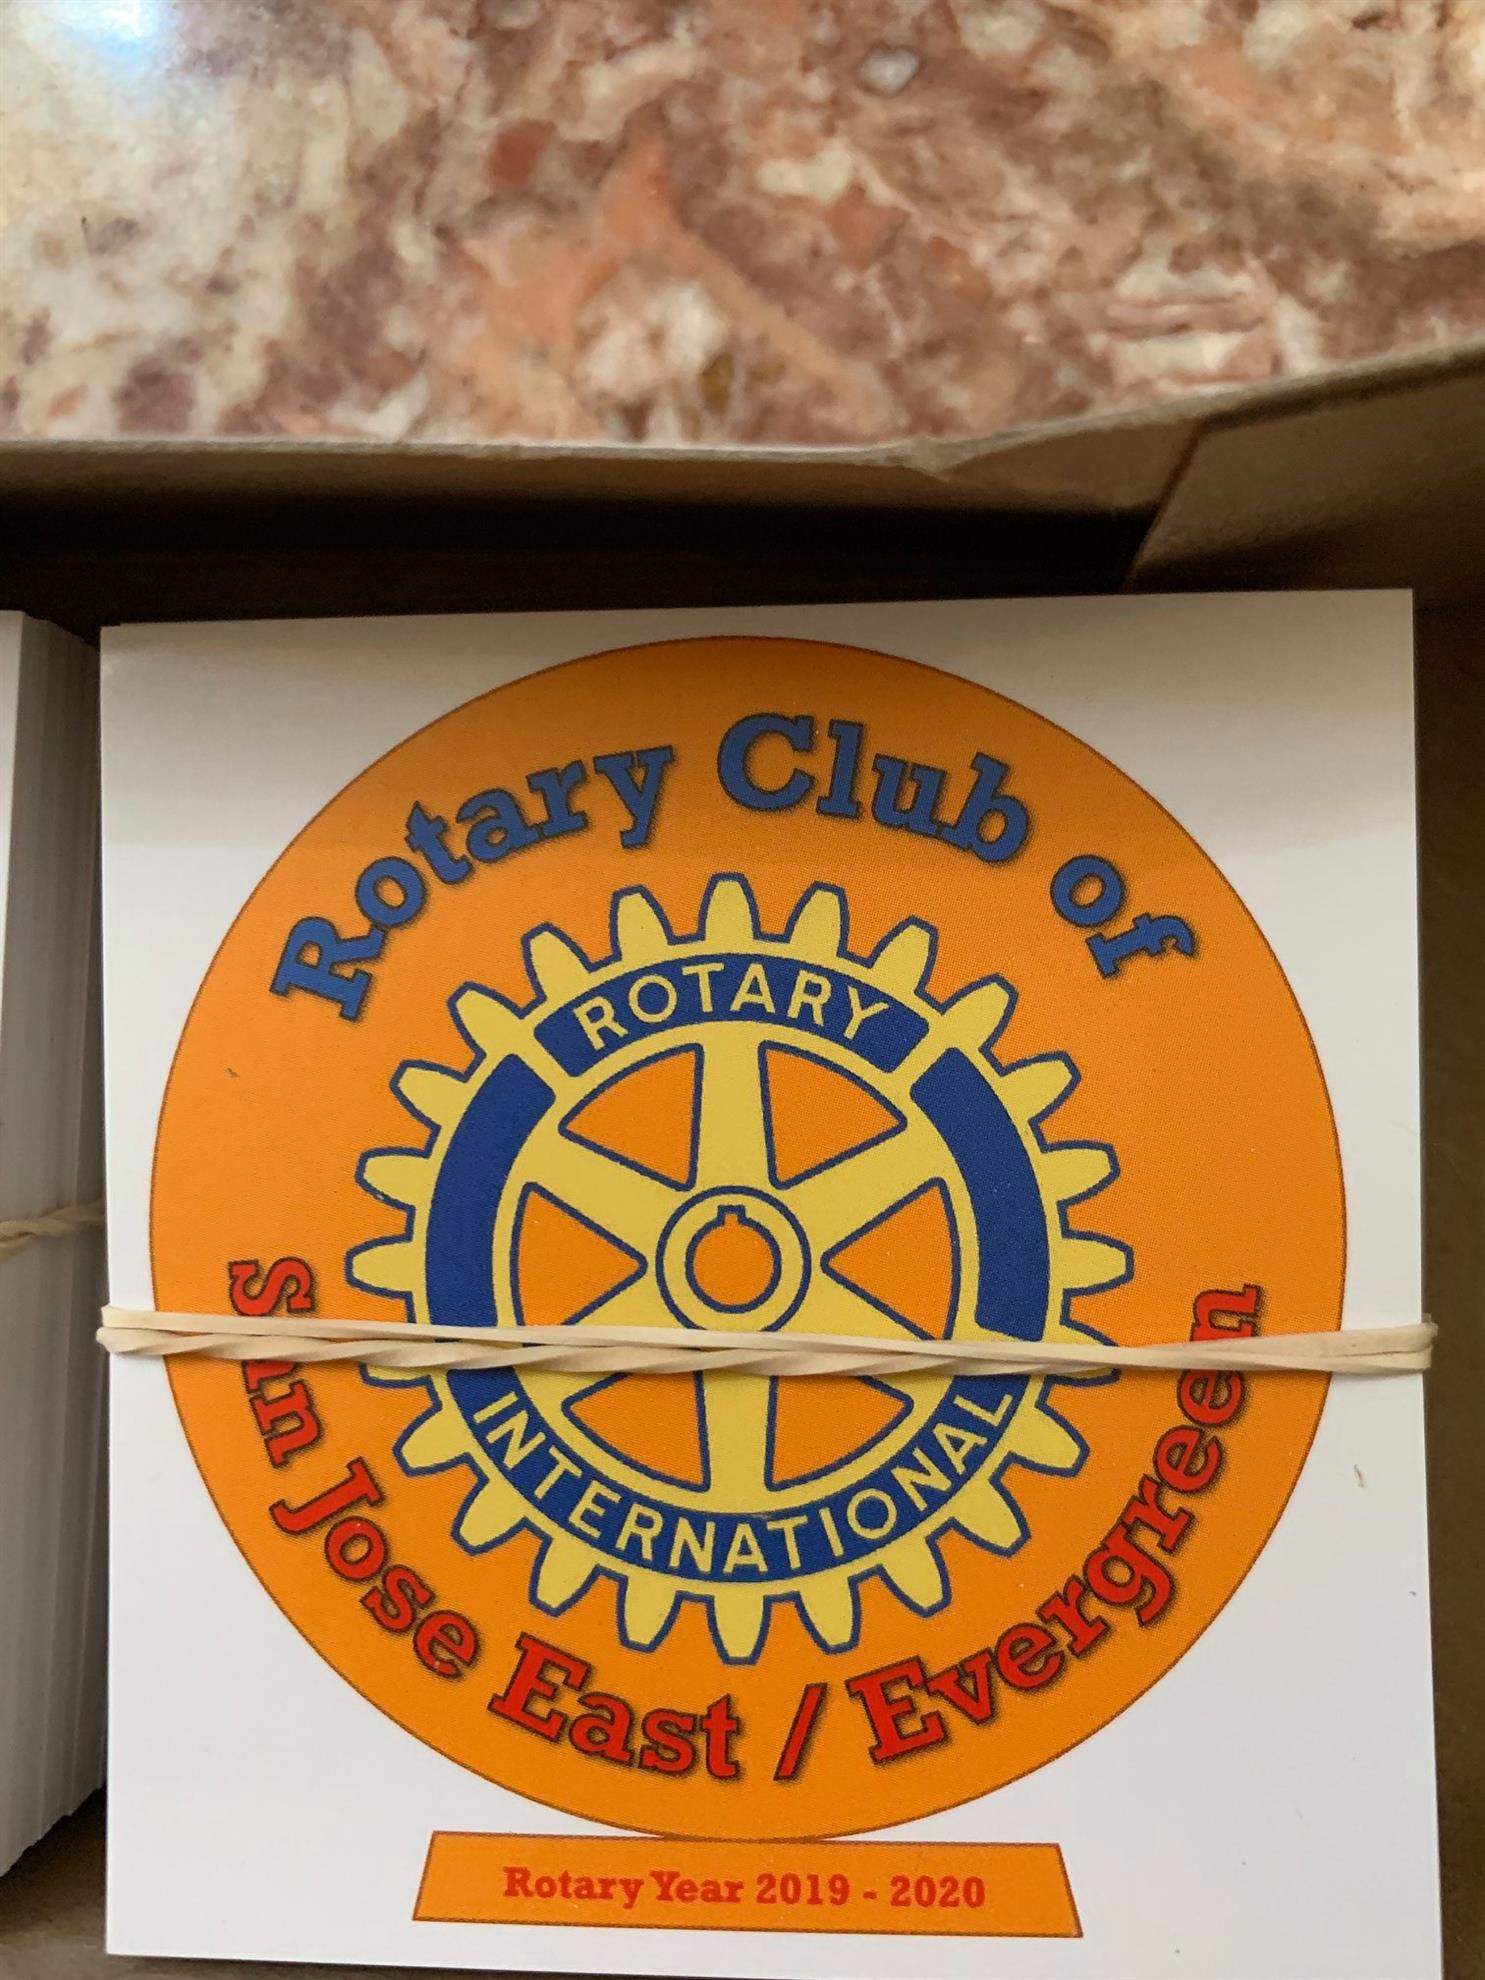 Stories | Rotary Club of San Jose East/Evergreen